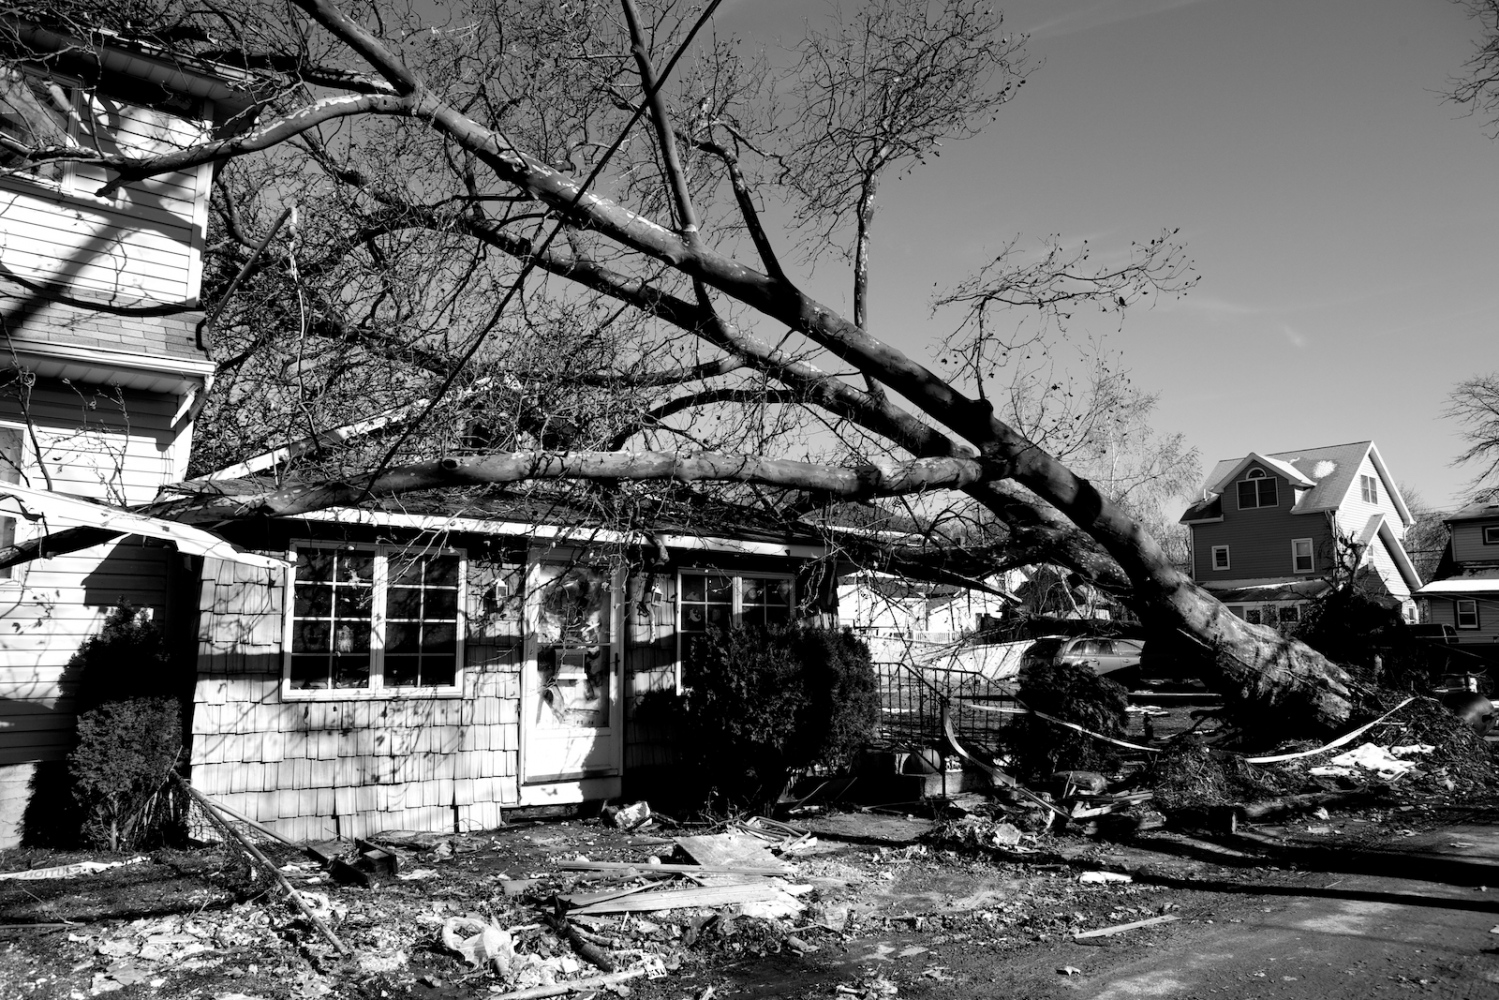 An old tree has fallen on top of a home during Hurricane Sandy in New Dorp Beach, Staten Island, N.Y. on Nov. 9, 2012. New Dorp Beach was devastated by Hurricane Sandy and now faces the long road to recovery.